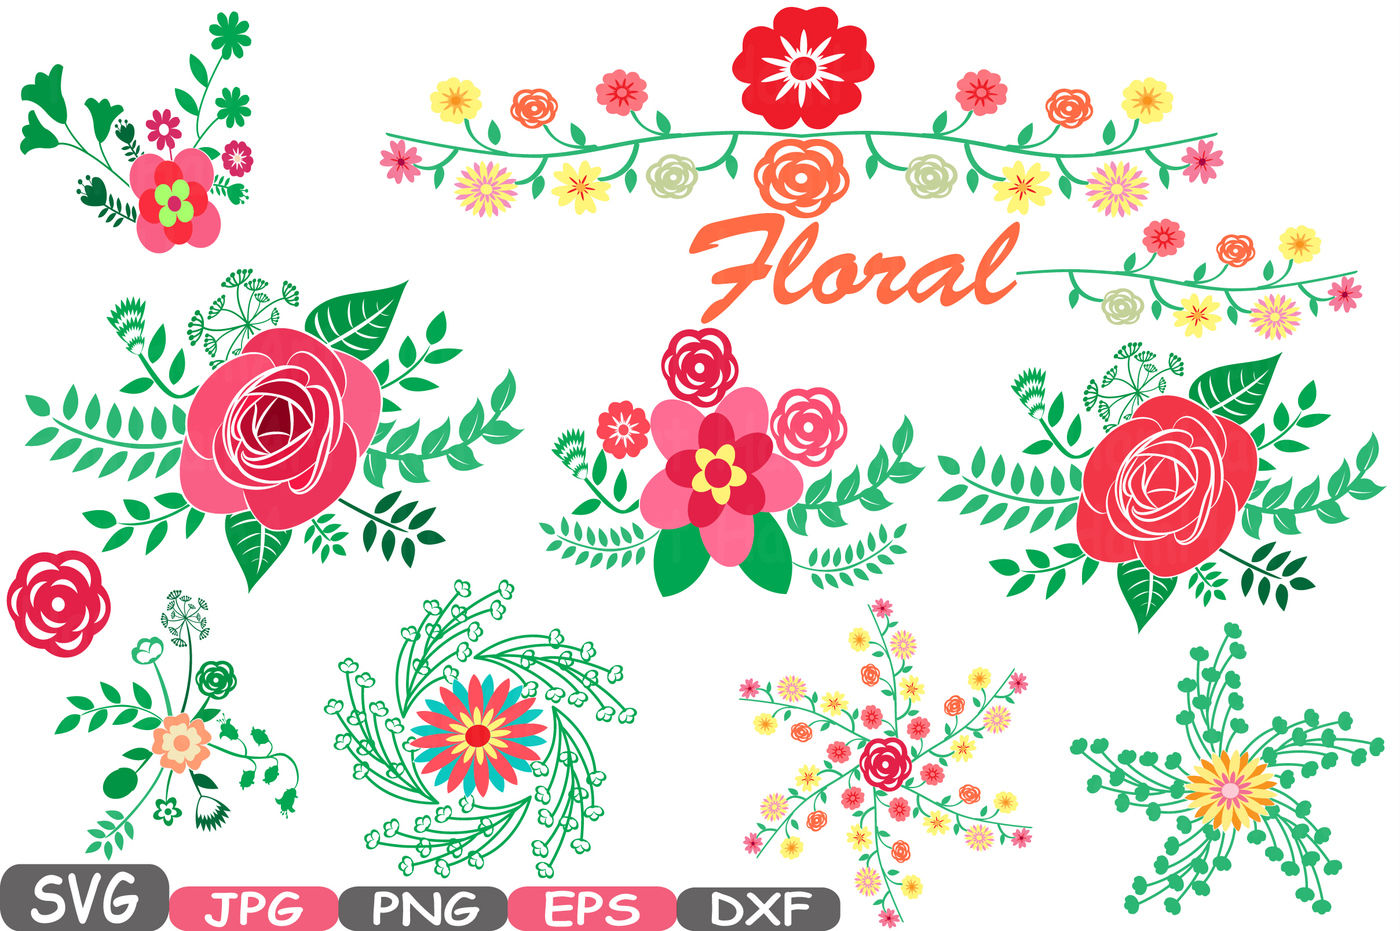 Wedding Flowers Vintage Floral Invitation Cutting Files Svg Eps Png Dxf Jpg Party Colorful Clip Art Vector Graphics Clipart 21sv By Hamhamart Thehungryjpeg Com